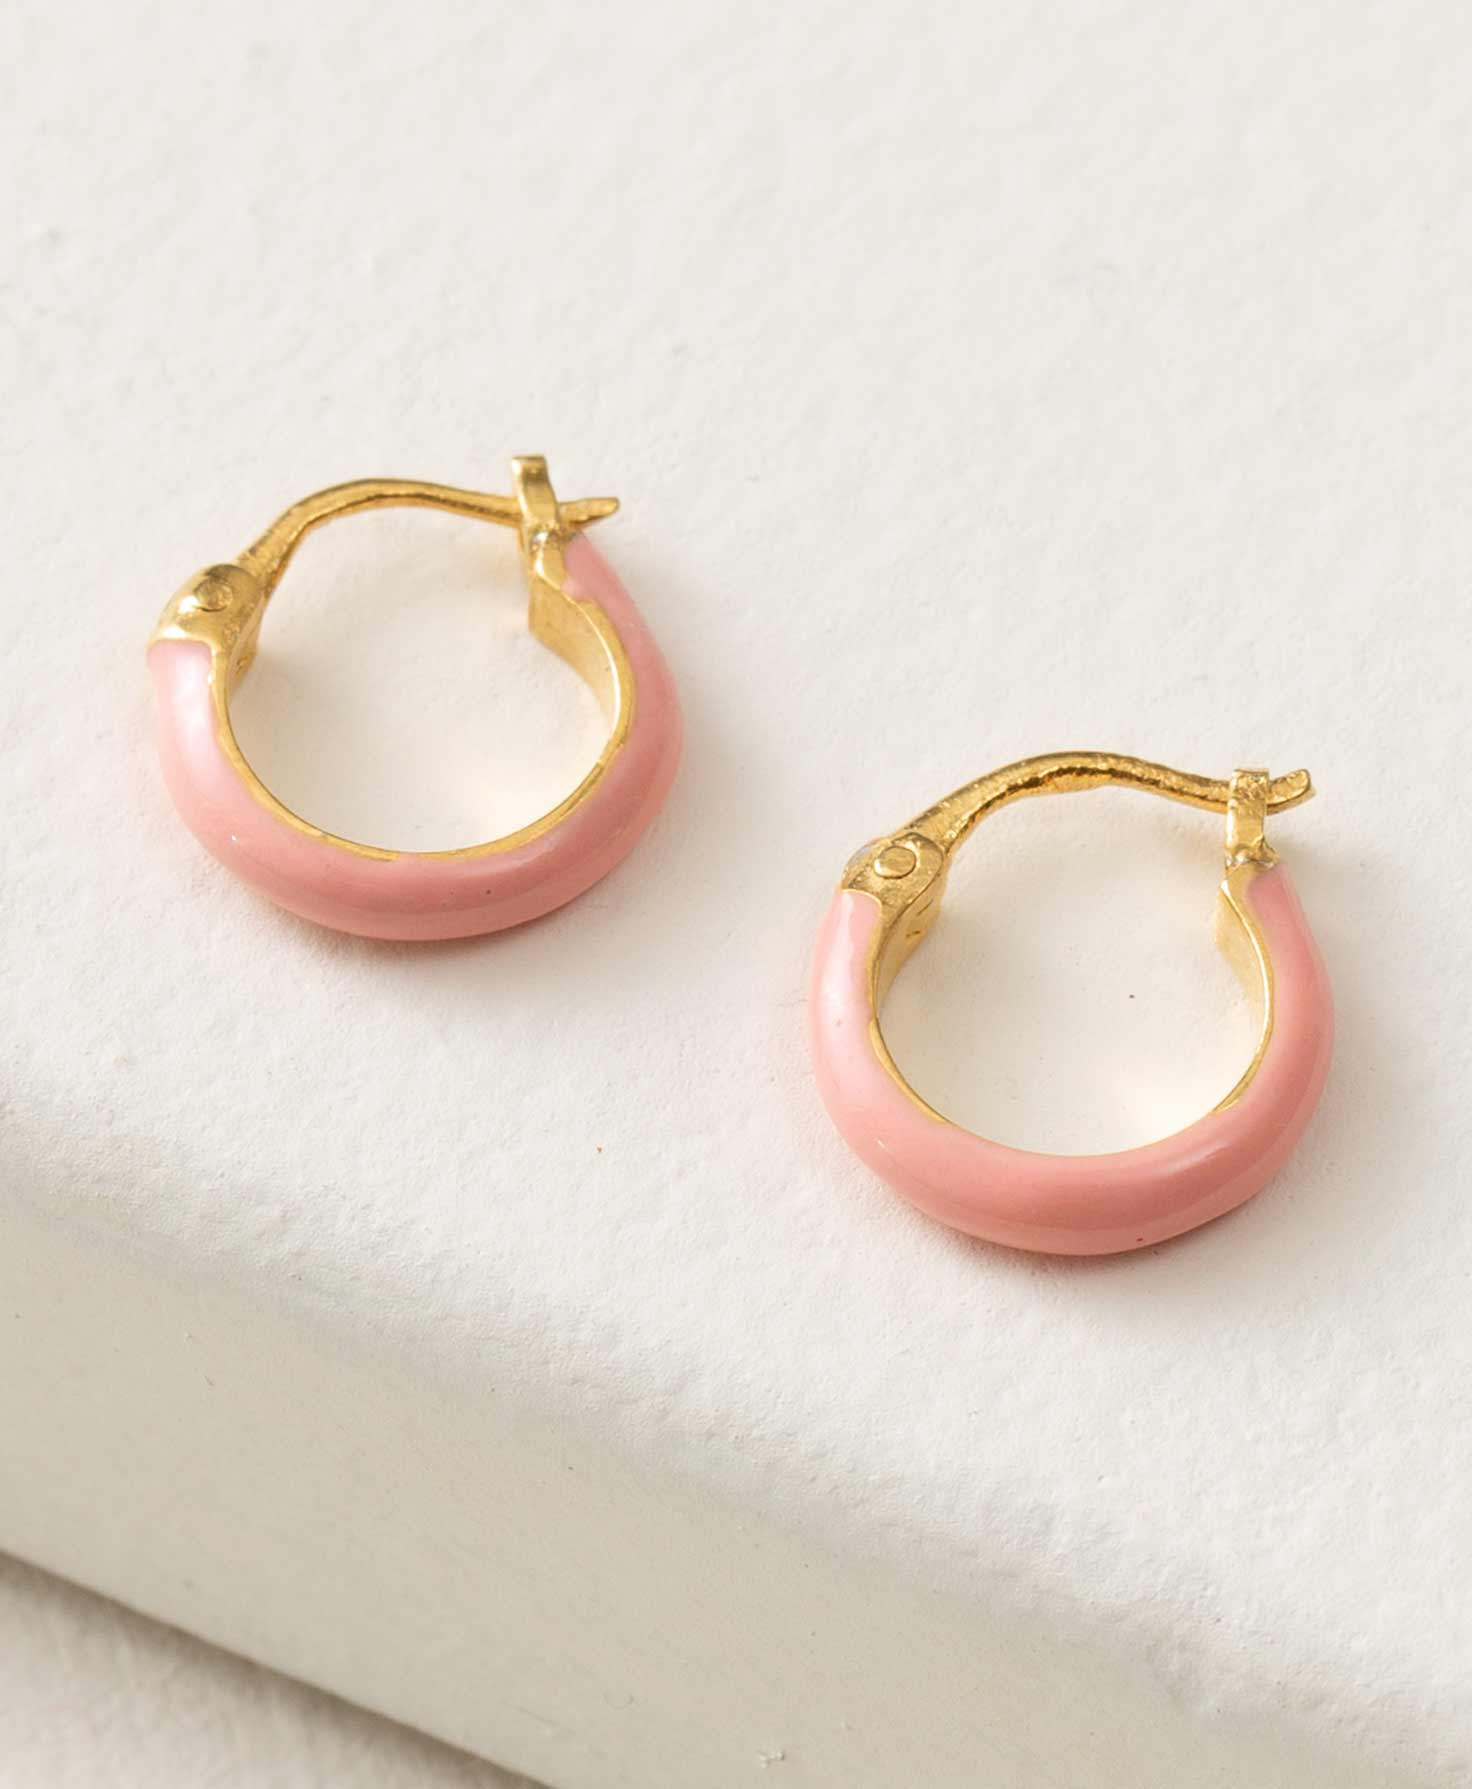 The Golden Hour Earrings are positioned on top of a white block. They are composed of a small gold hoop coated in smooth, blush-colored enamel. The earrings feature a latch-back style closure that snaps into place.